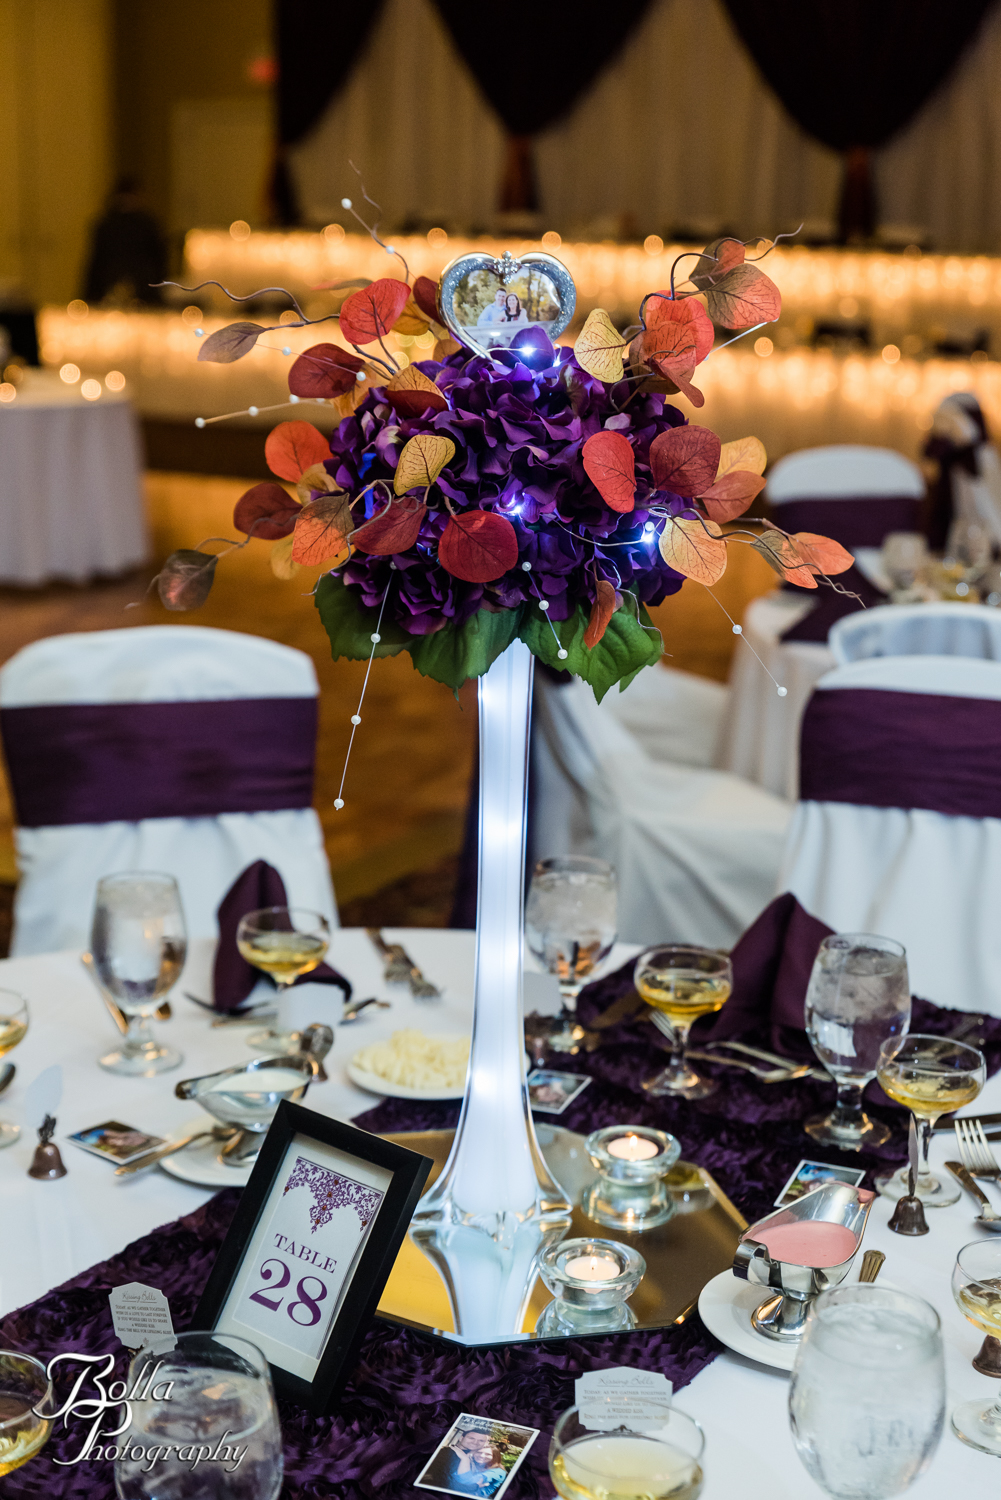 Bolla_Photography_St_Louis_wedding_photographer-0381.jpg